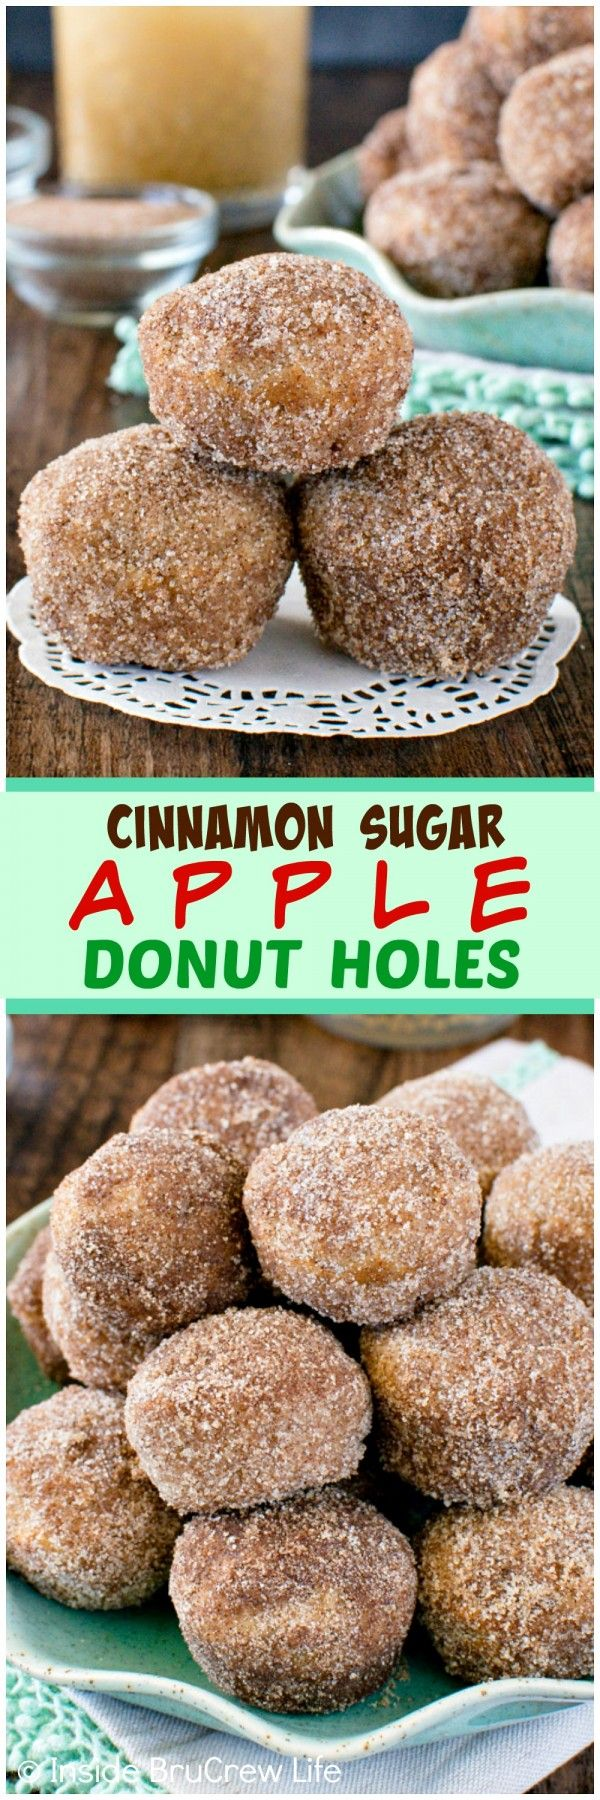 Cinnamon Sugar Apple Donut Holes - three times the apple goodness & a buttery sugar coating will make these little donuts disappear in a hurry. Great breakfast recipe for fall mornings!